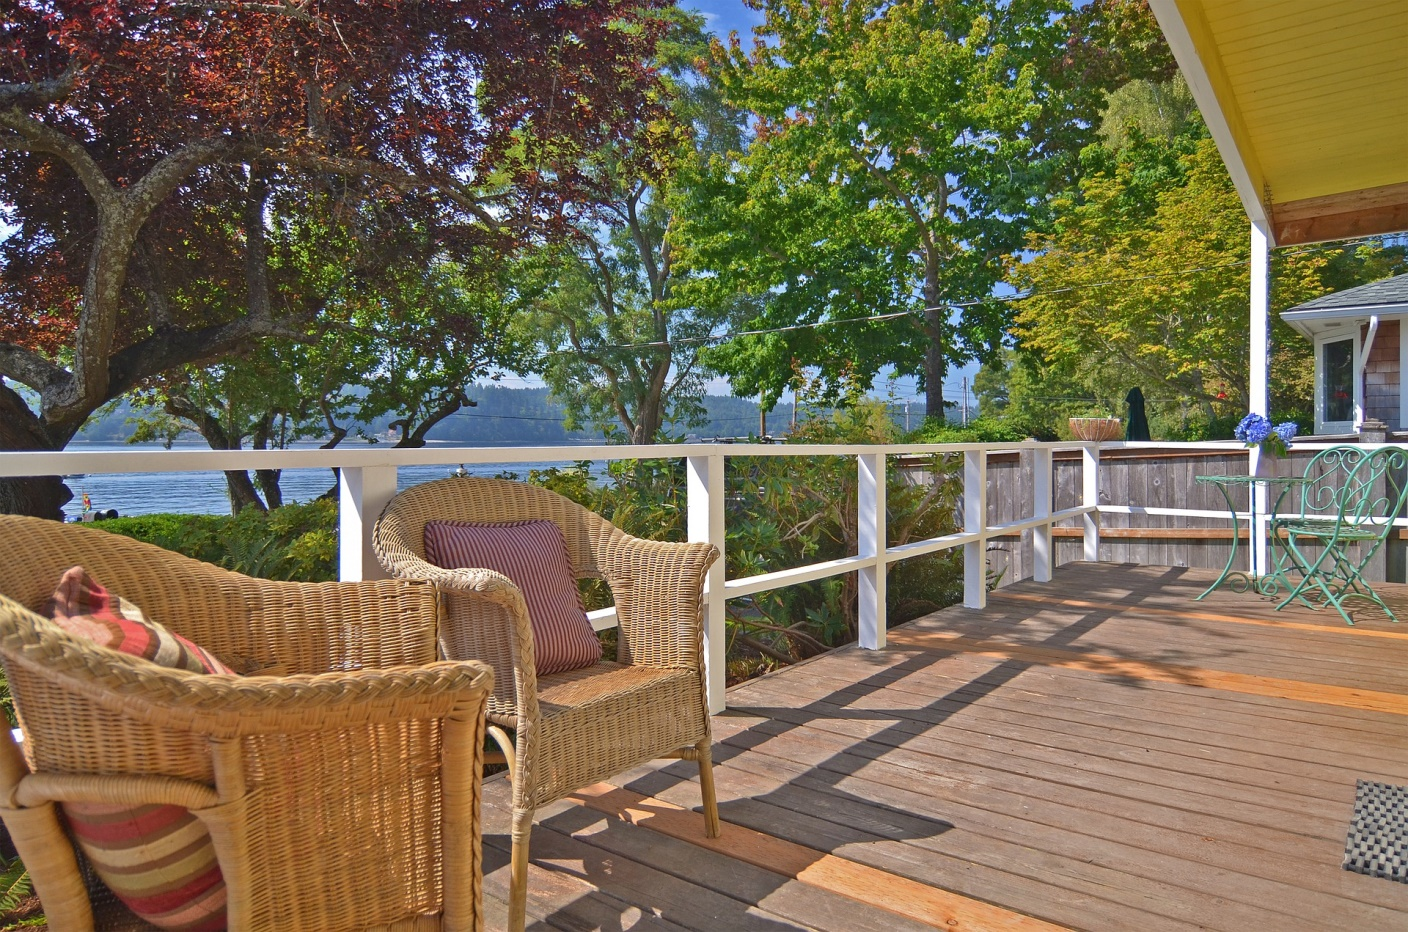 Deck to Your Home